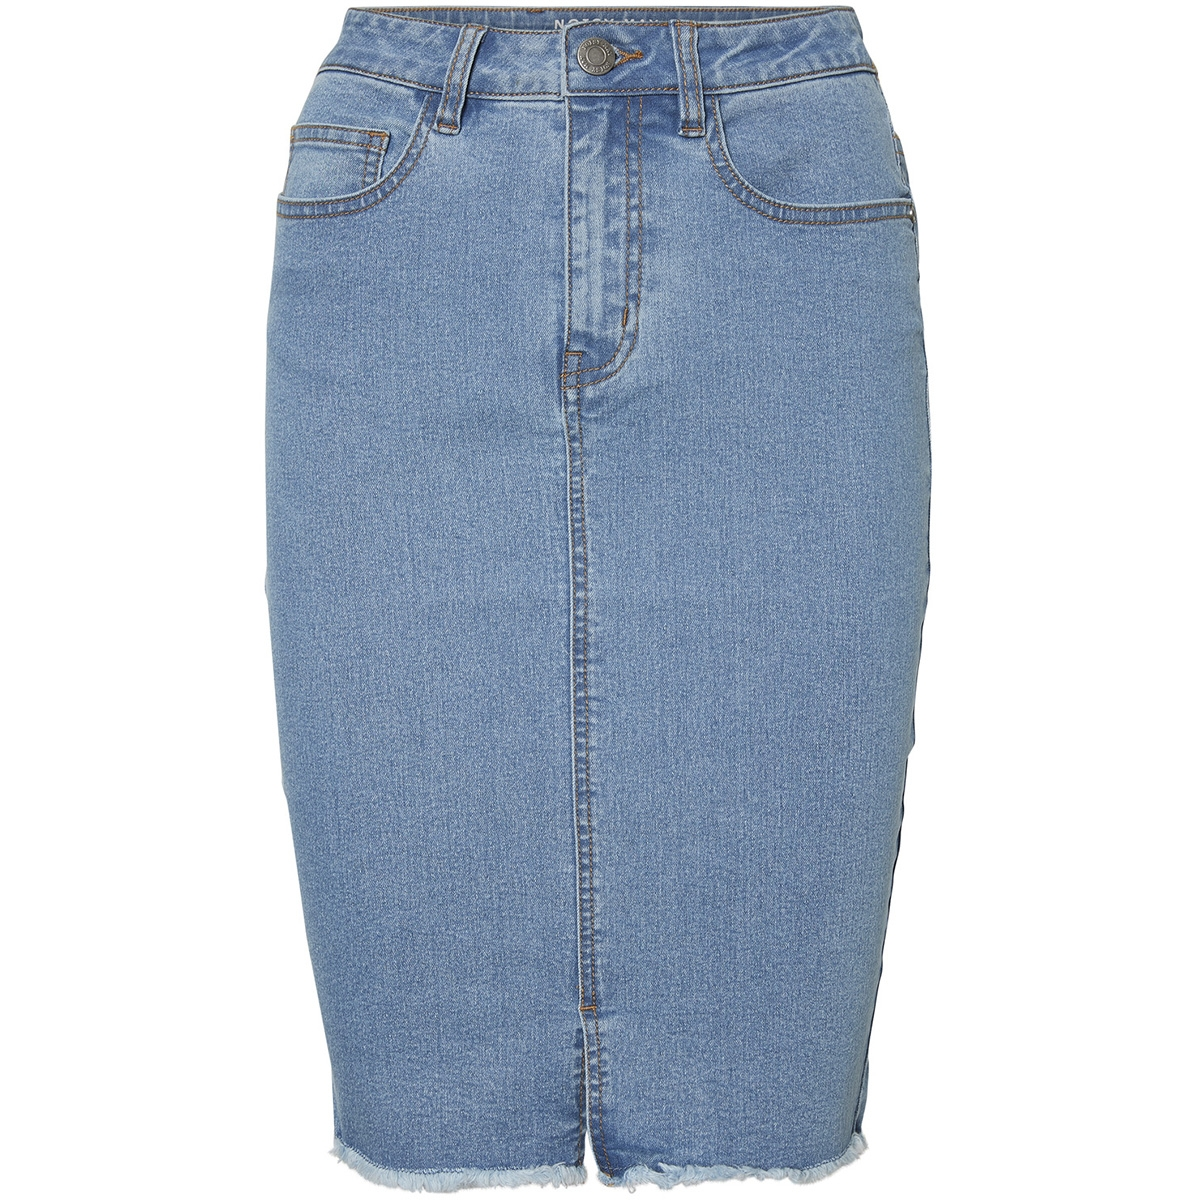 nmbe lexi hw mb pencil denim skirt 27002616 noisy may rok medium blue denim